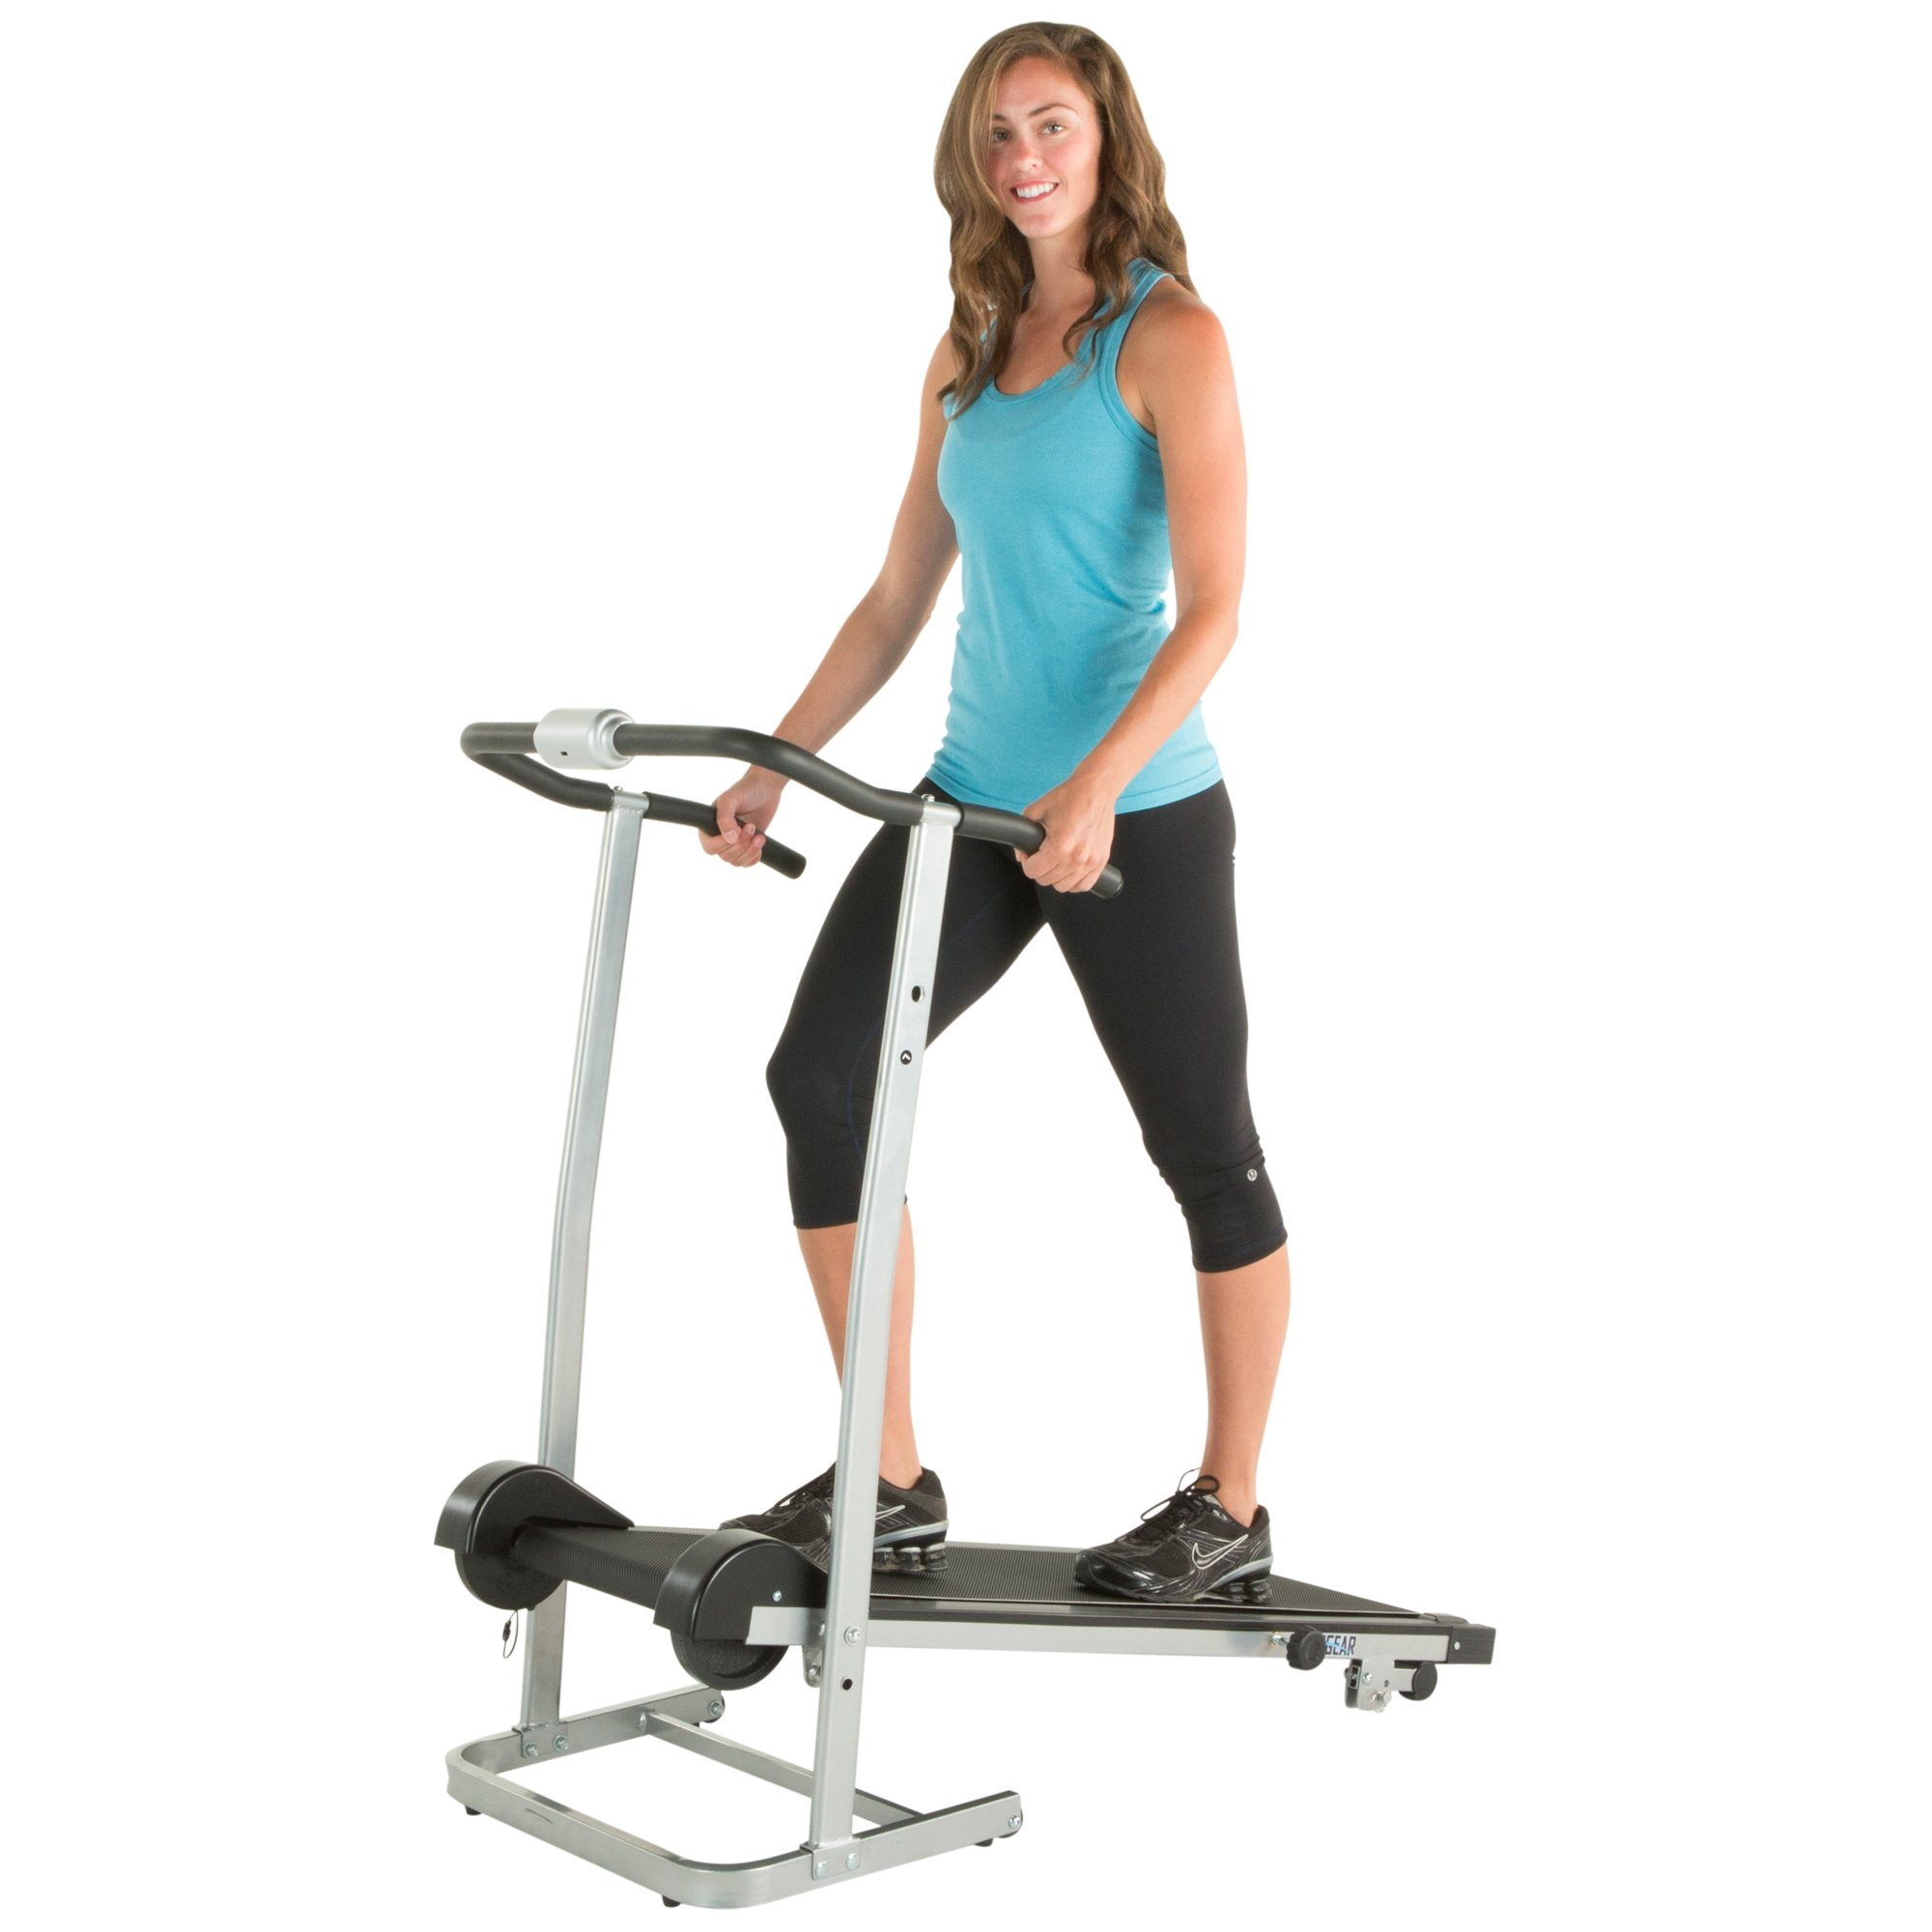 ProGear 190 Manual Treadmill with 2 Level Incline and Twin Flywheels by ProGear